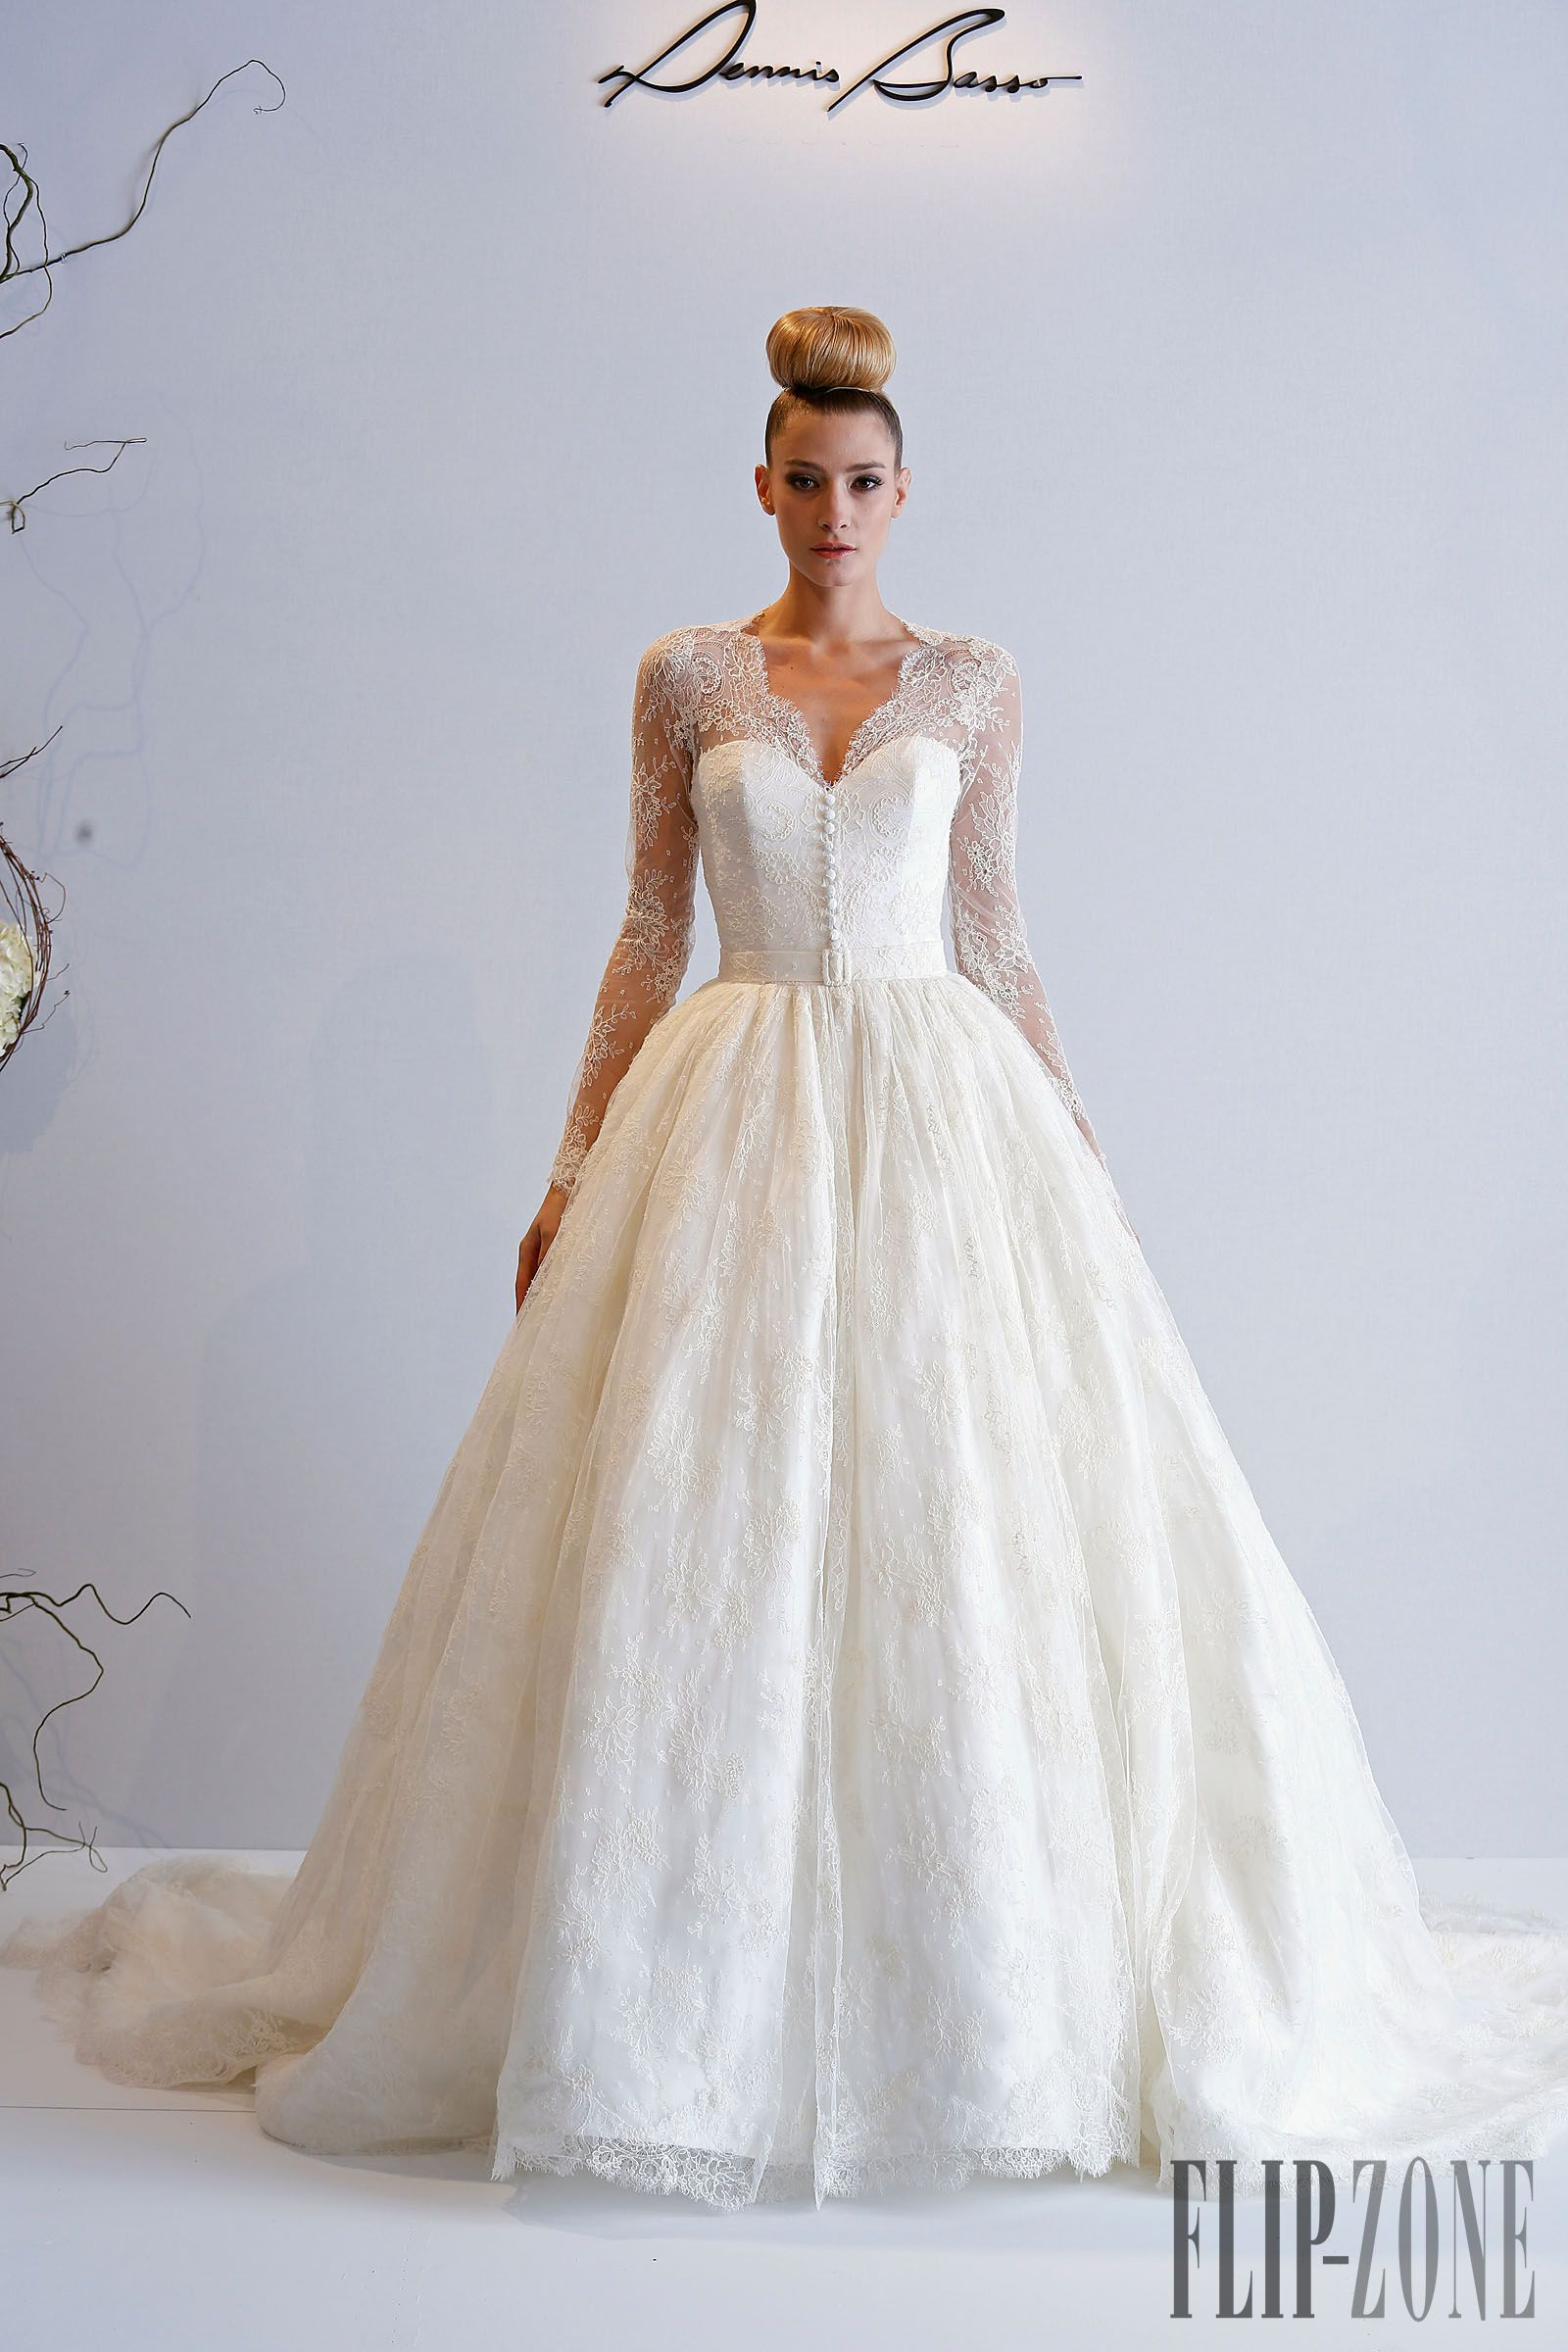 Wedding dresses kleinfeld  Dennis Basso for Kleinfeld  collection  Bridal